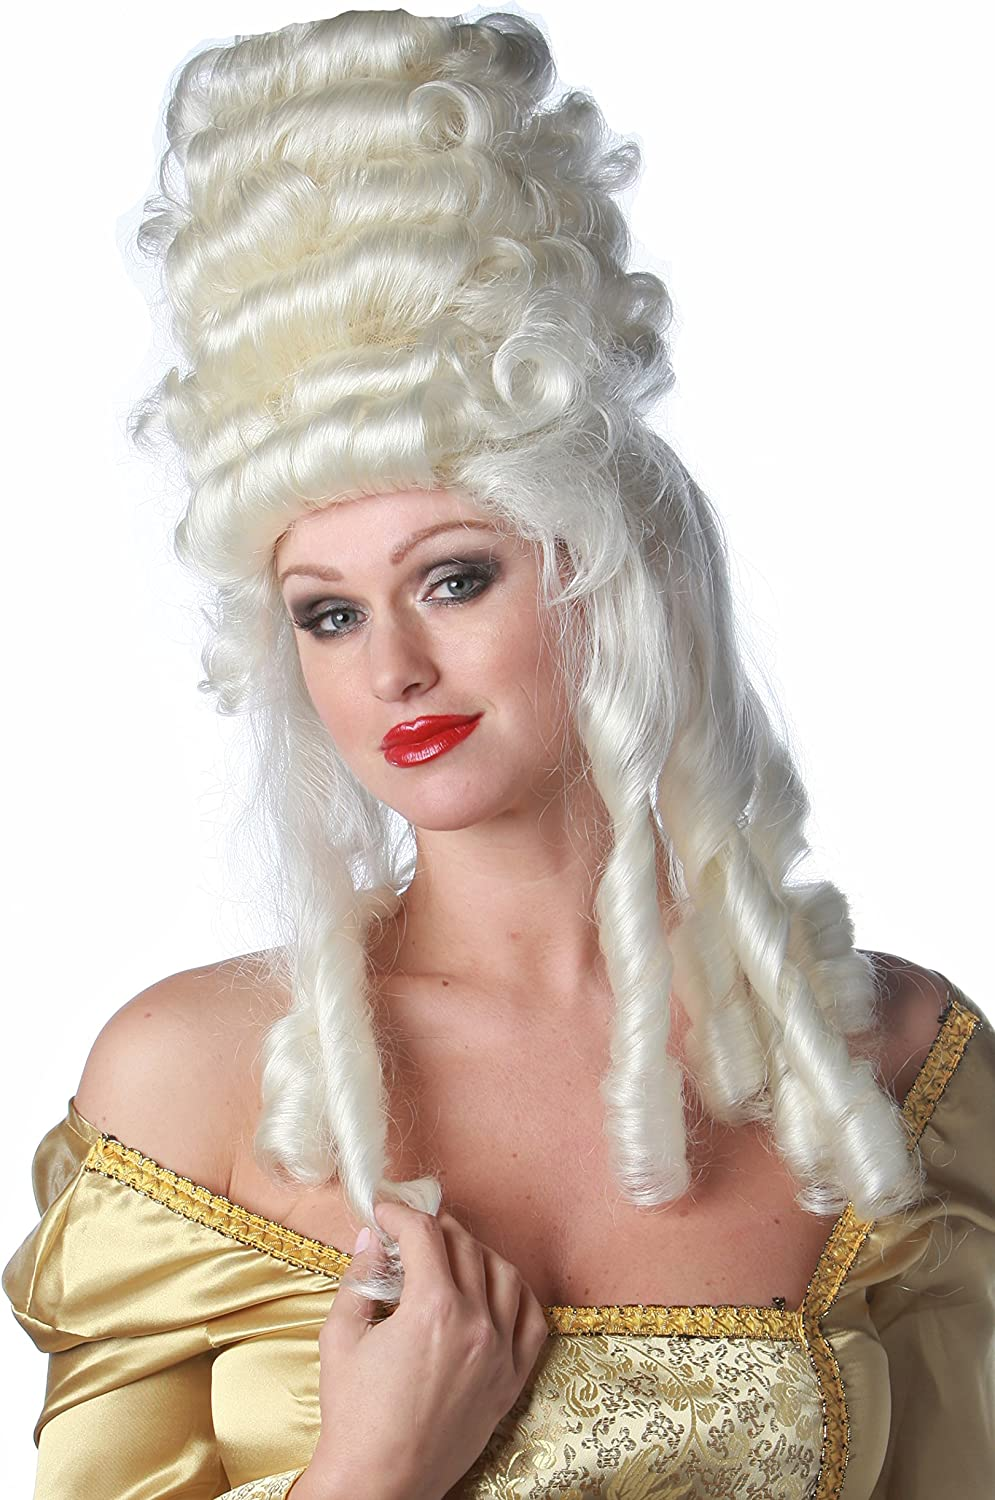 Giant Trading 2021 Clearance SALE! Limited time! new LuxeWigs Marie French Colonial Characte Antoinette